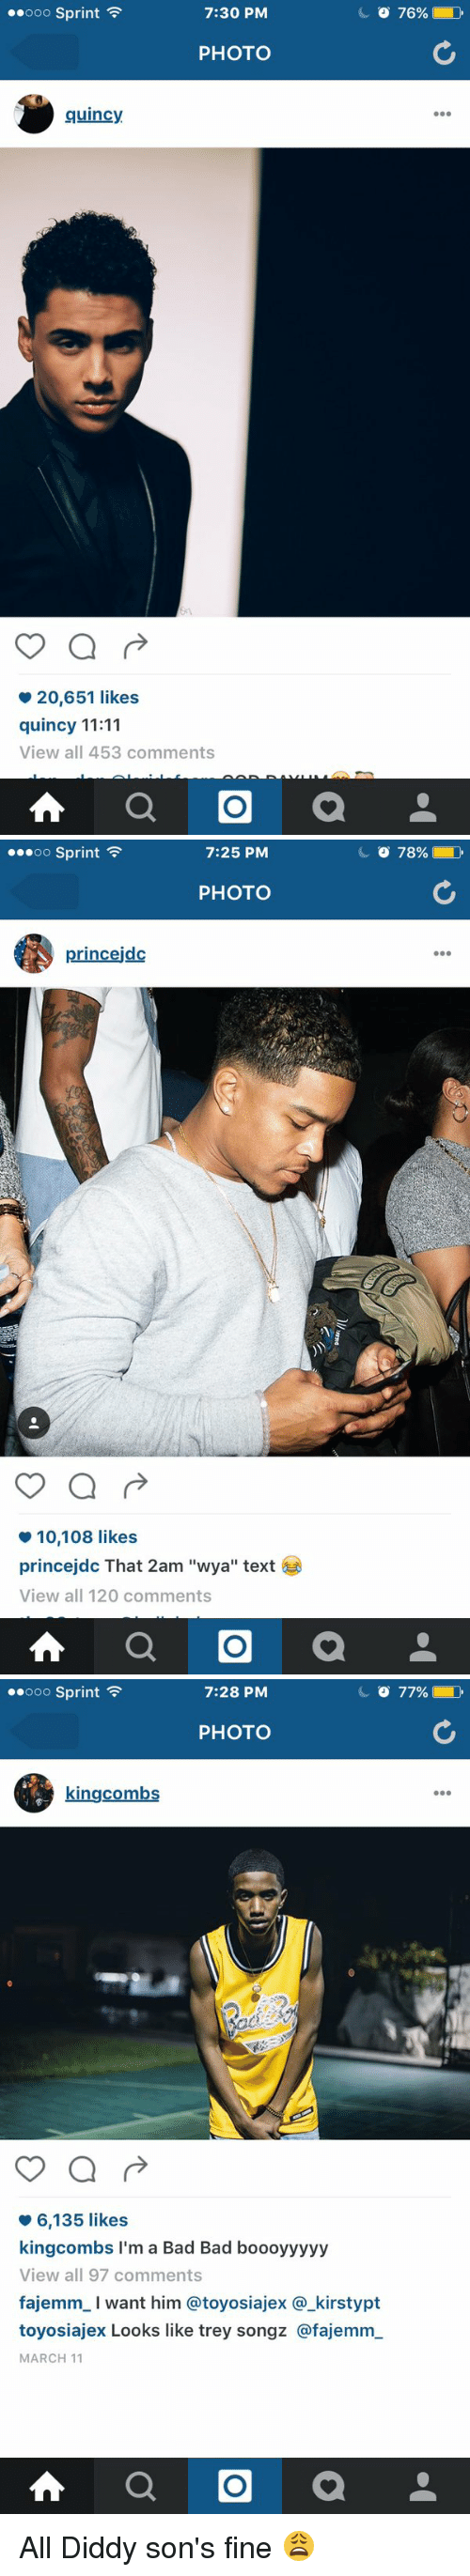 """Bad, Texting, and Trey Songz: 7:30 PM  ooo Sprint  PHOTO  quincy  20,651 likes  quincy 11:11  View all 453 comments  A a   OO Sprint  7:25 PM  PHOTO  princejdc  10,108 likes  princejdc That 2am """"wya"""" text  View all 120 comments  A a  o 78%   7:28 PM  ooo Sprint  PHOTO  kingcombs  6,135 likes  kingcombs I'm a Bad Bad boooyyyyy  View all 97 comments  fajemm l want him atoyosiajex a kirstypt  toyosiajex Looks like trey songz @fajemm  MARCH 11  A a All Diddy son's fine 😩"""